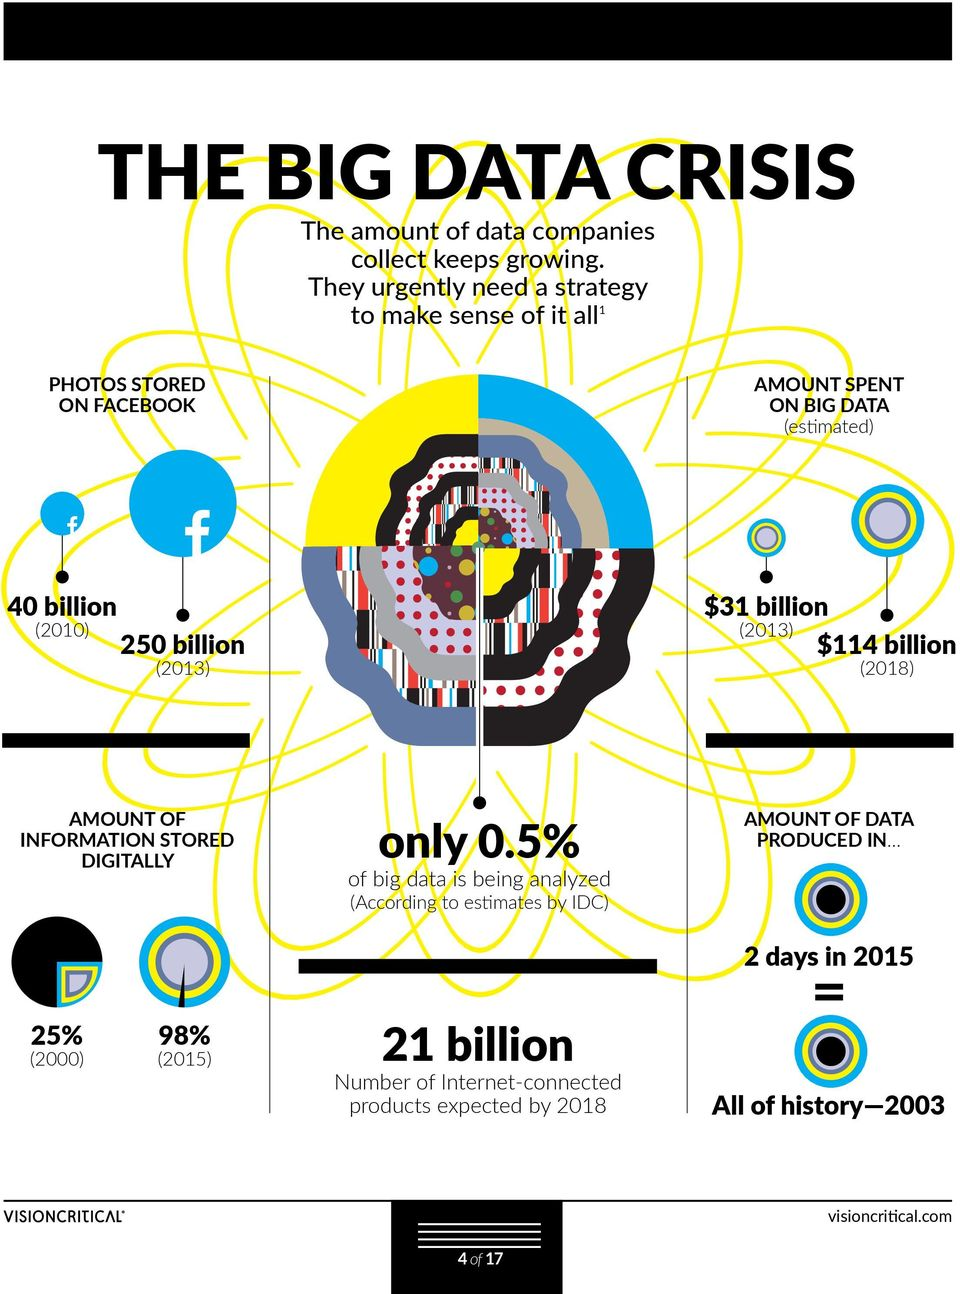 (2010) 250 billion (2013) $31 billion (2013) $114 billion (2018) AMOUNT OF INFORMATION STORED DIGITALLY only 0.